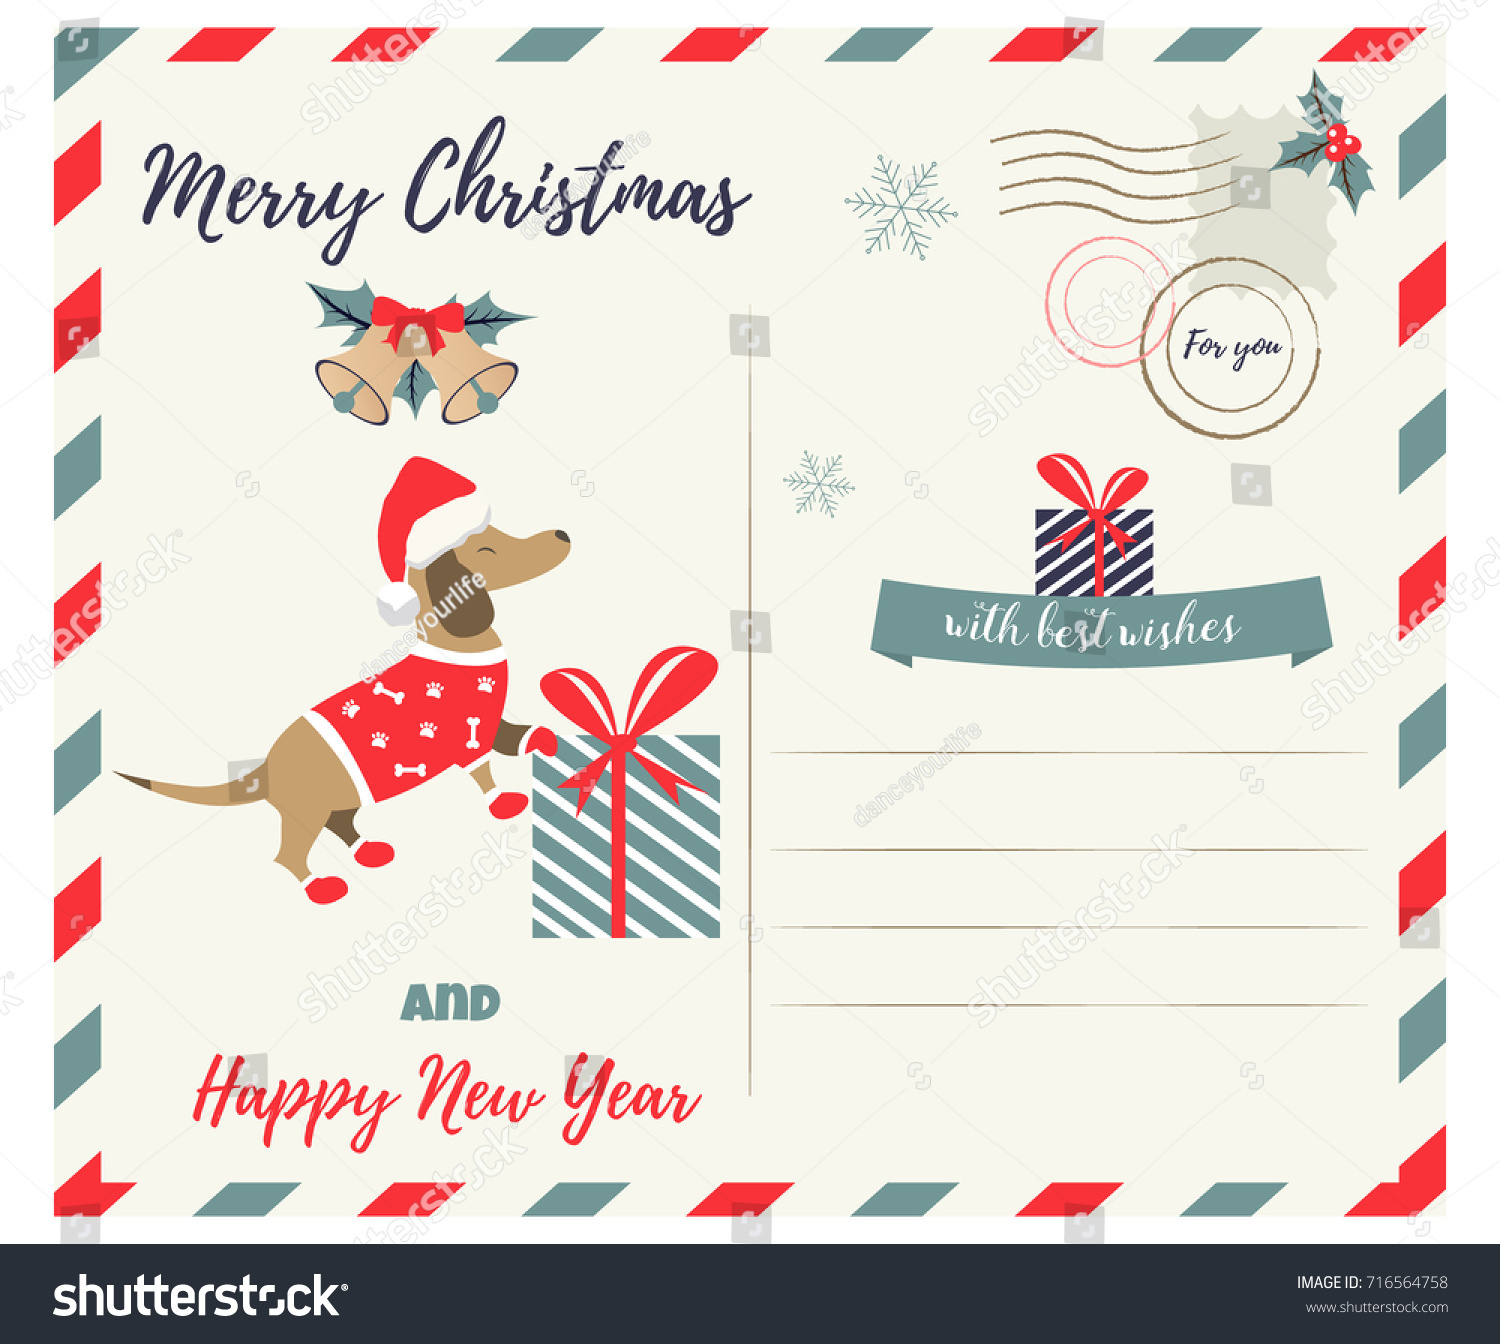 Christmas new year greeting postcard holiday stock vector royalty christmas or new year greeting postcard with holiday dachshund m4hsunfo